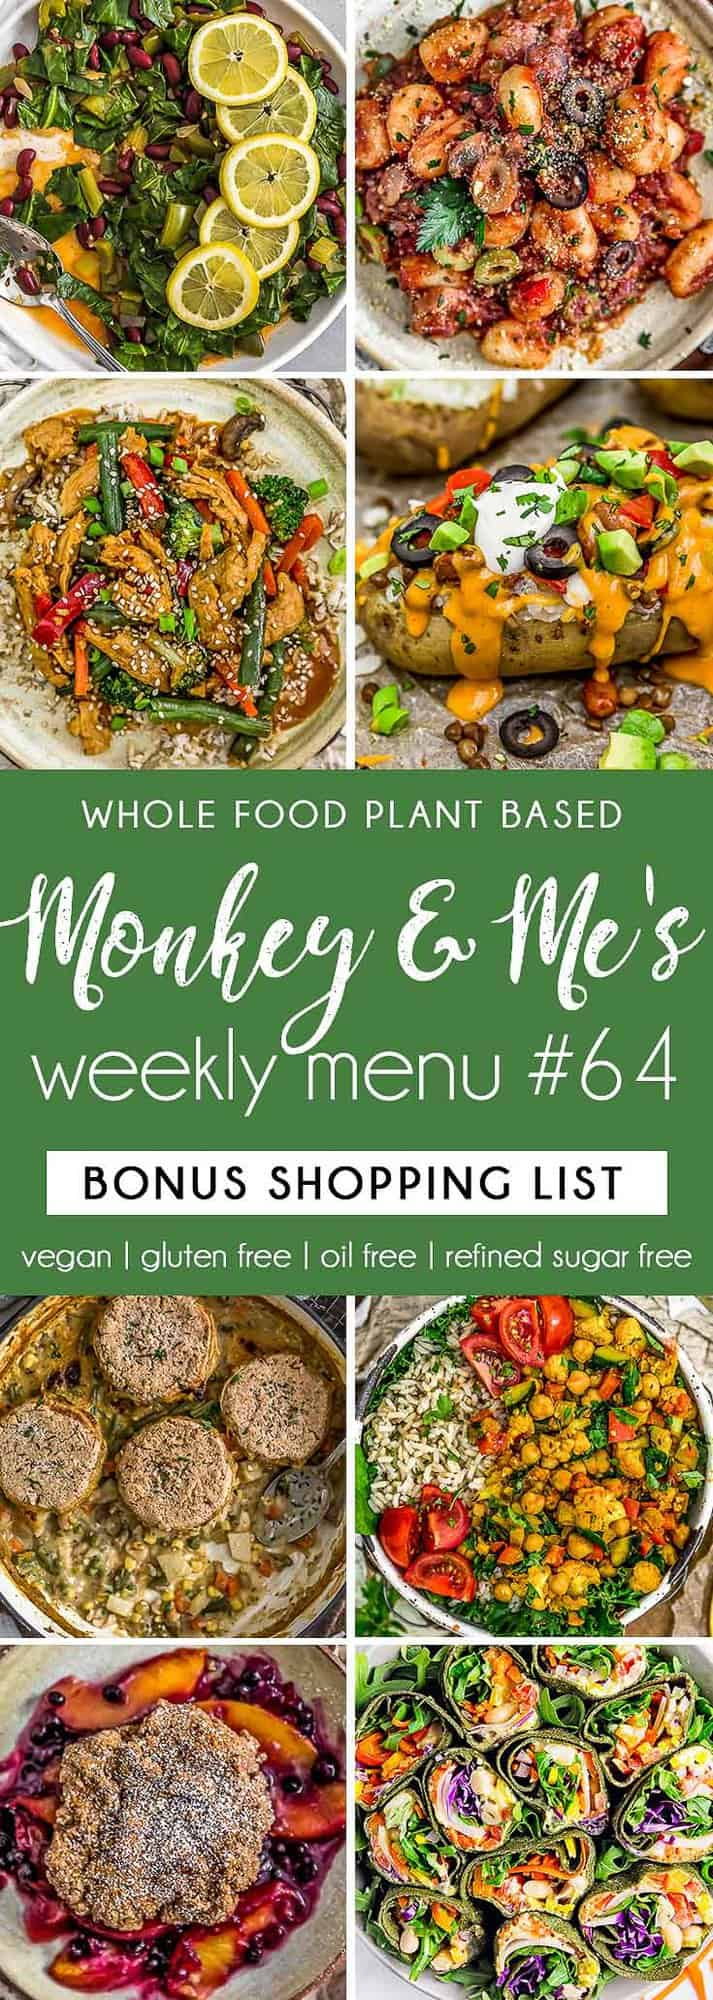 Monkey and Me's Menu 64 featuring 8 recipes